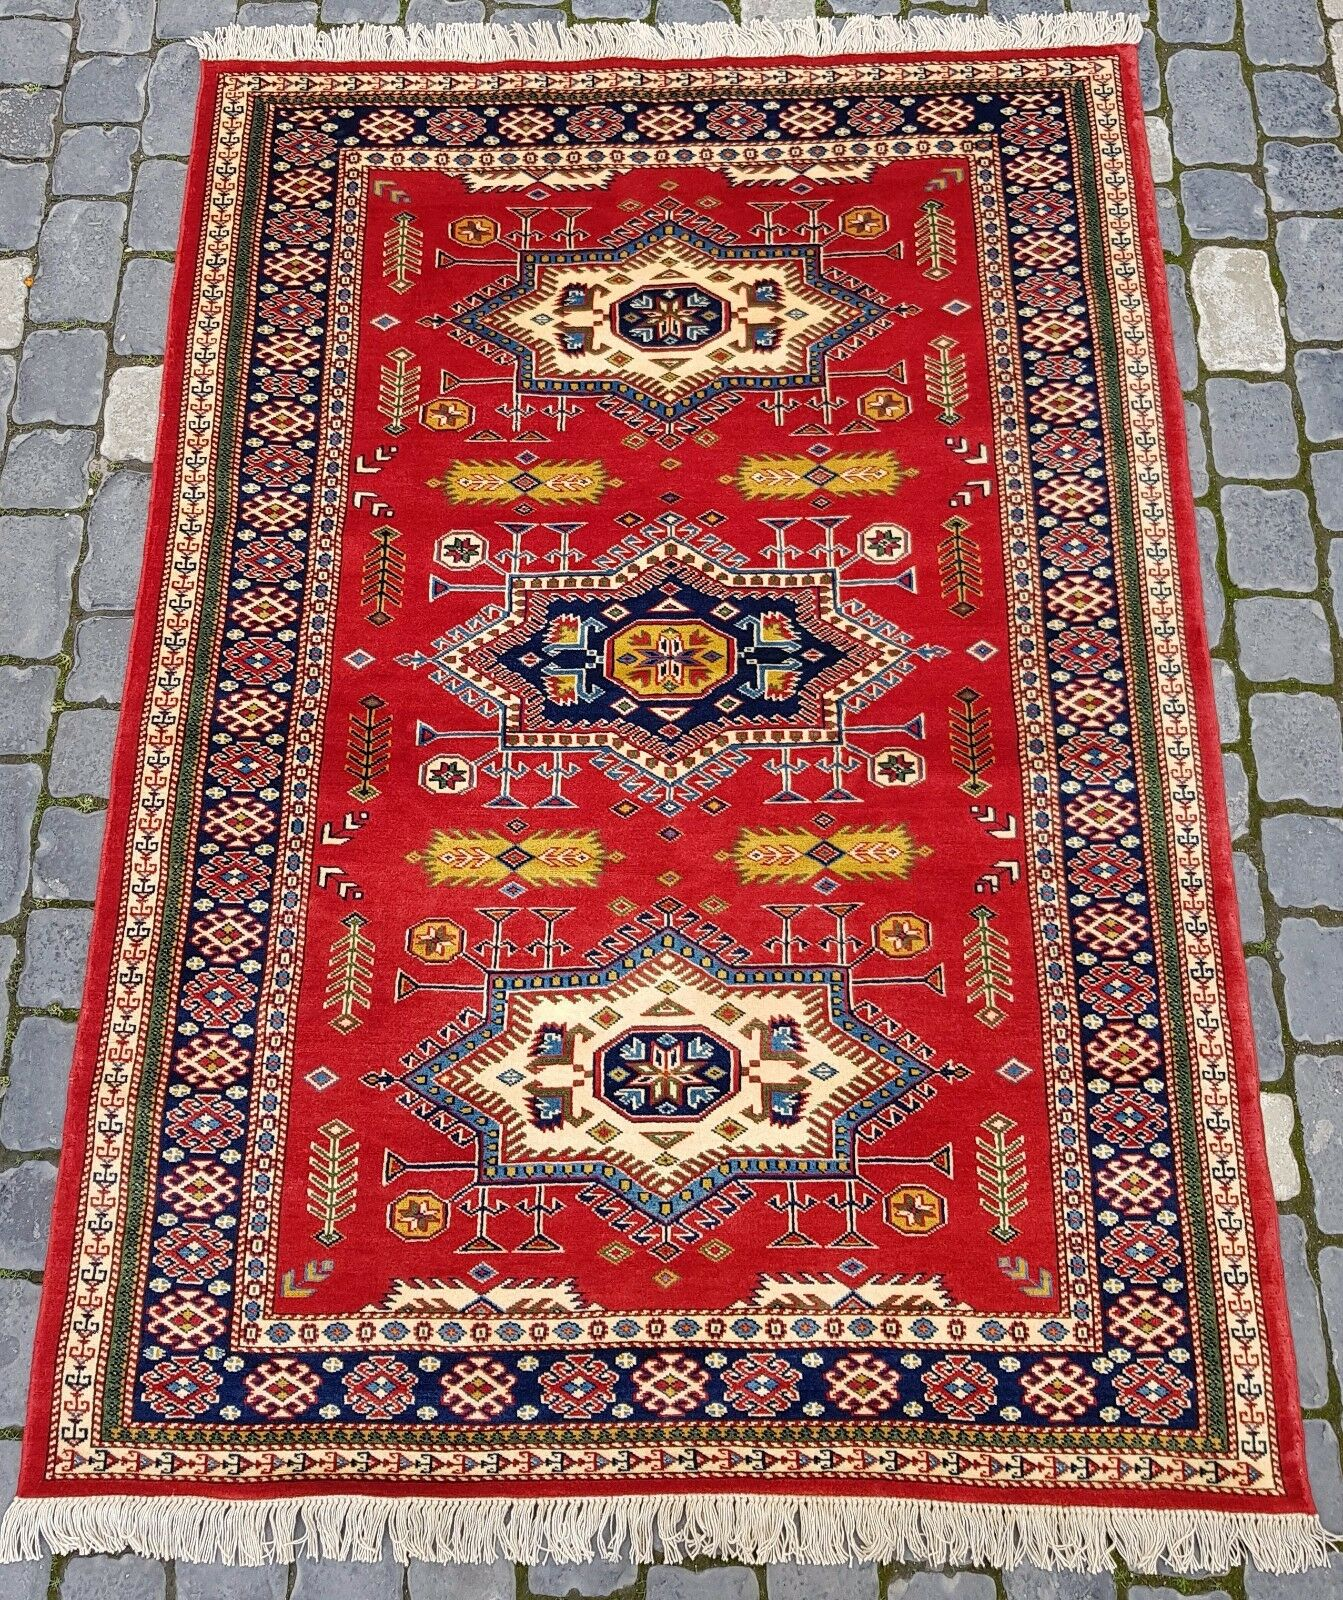 4'x6' New Rug Carpet Handmade Wool Hand Knotted Traditional Old Antique Oriental